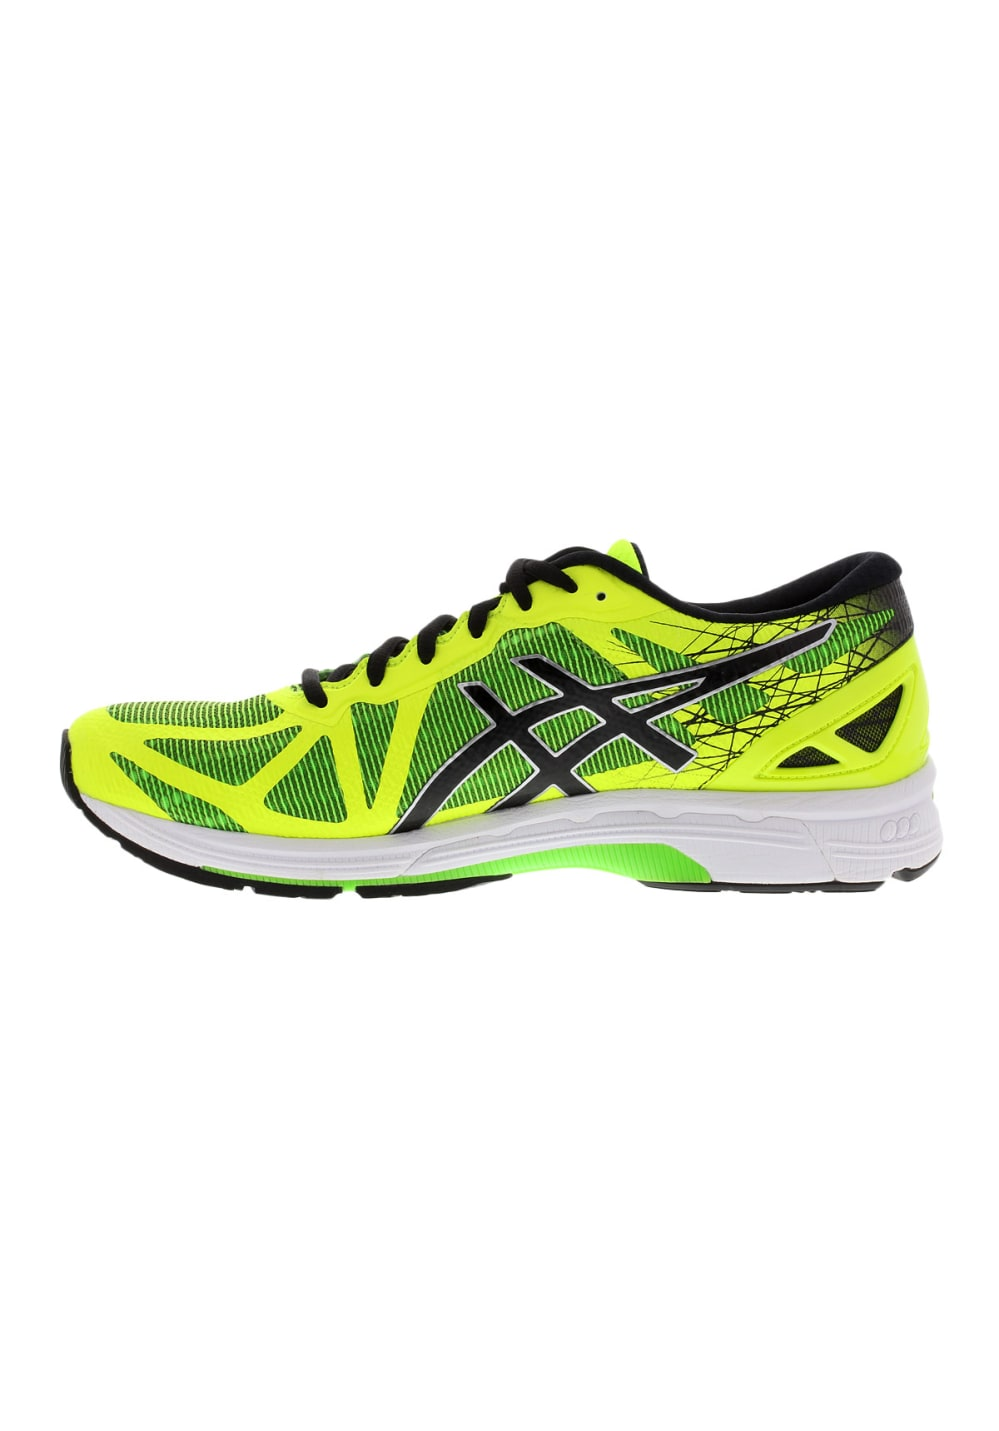 info pour cc80a e0b98 ASICS GEL-DS Trainer 21 Neutral - Running shoes for Men - Yellow